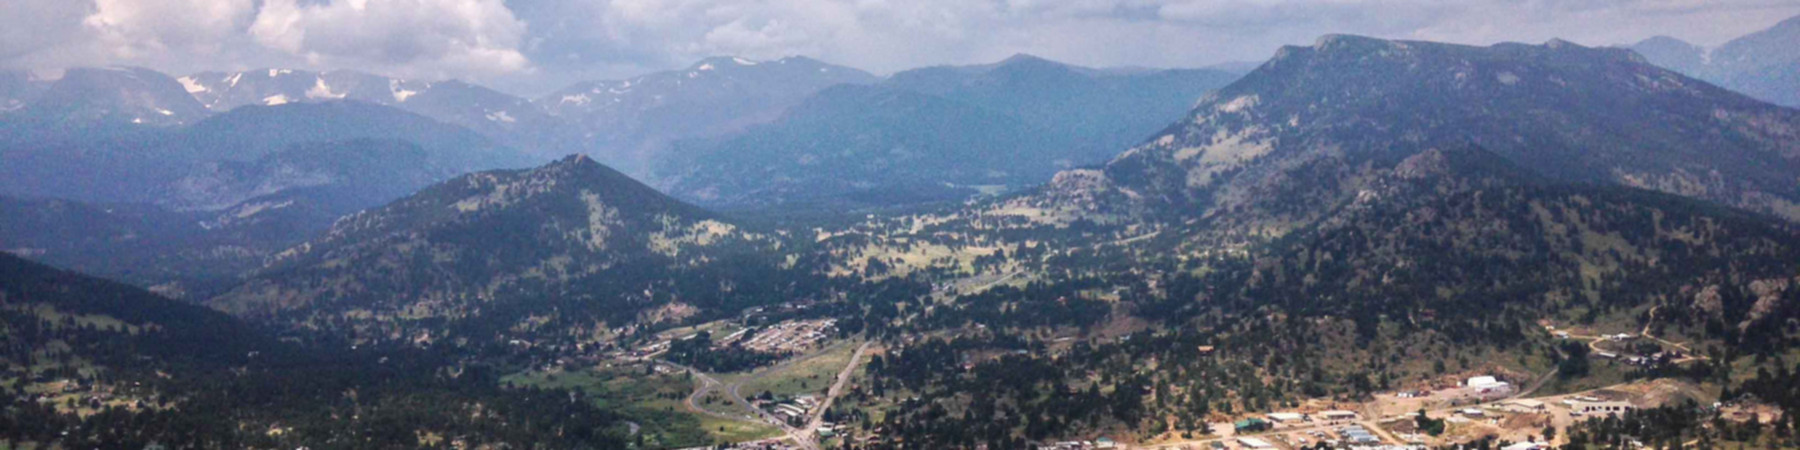 Dogs are allowed on this trail, and it is accessible throughout the year. Estes Park Wikitravel